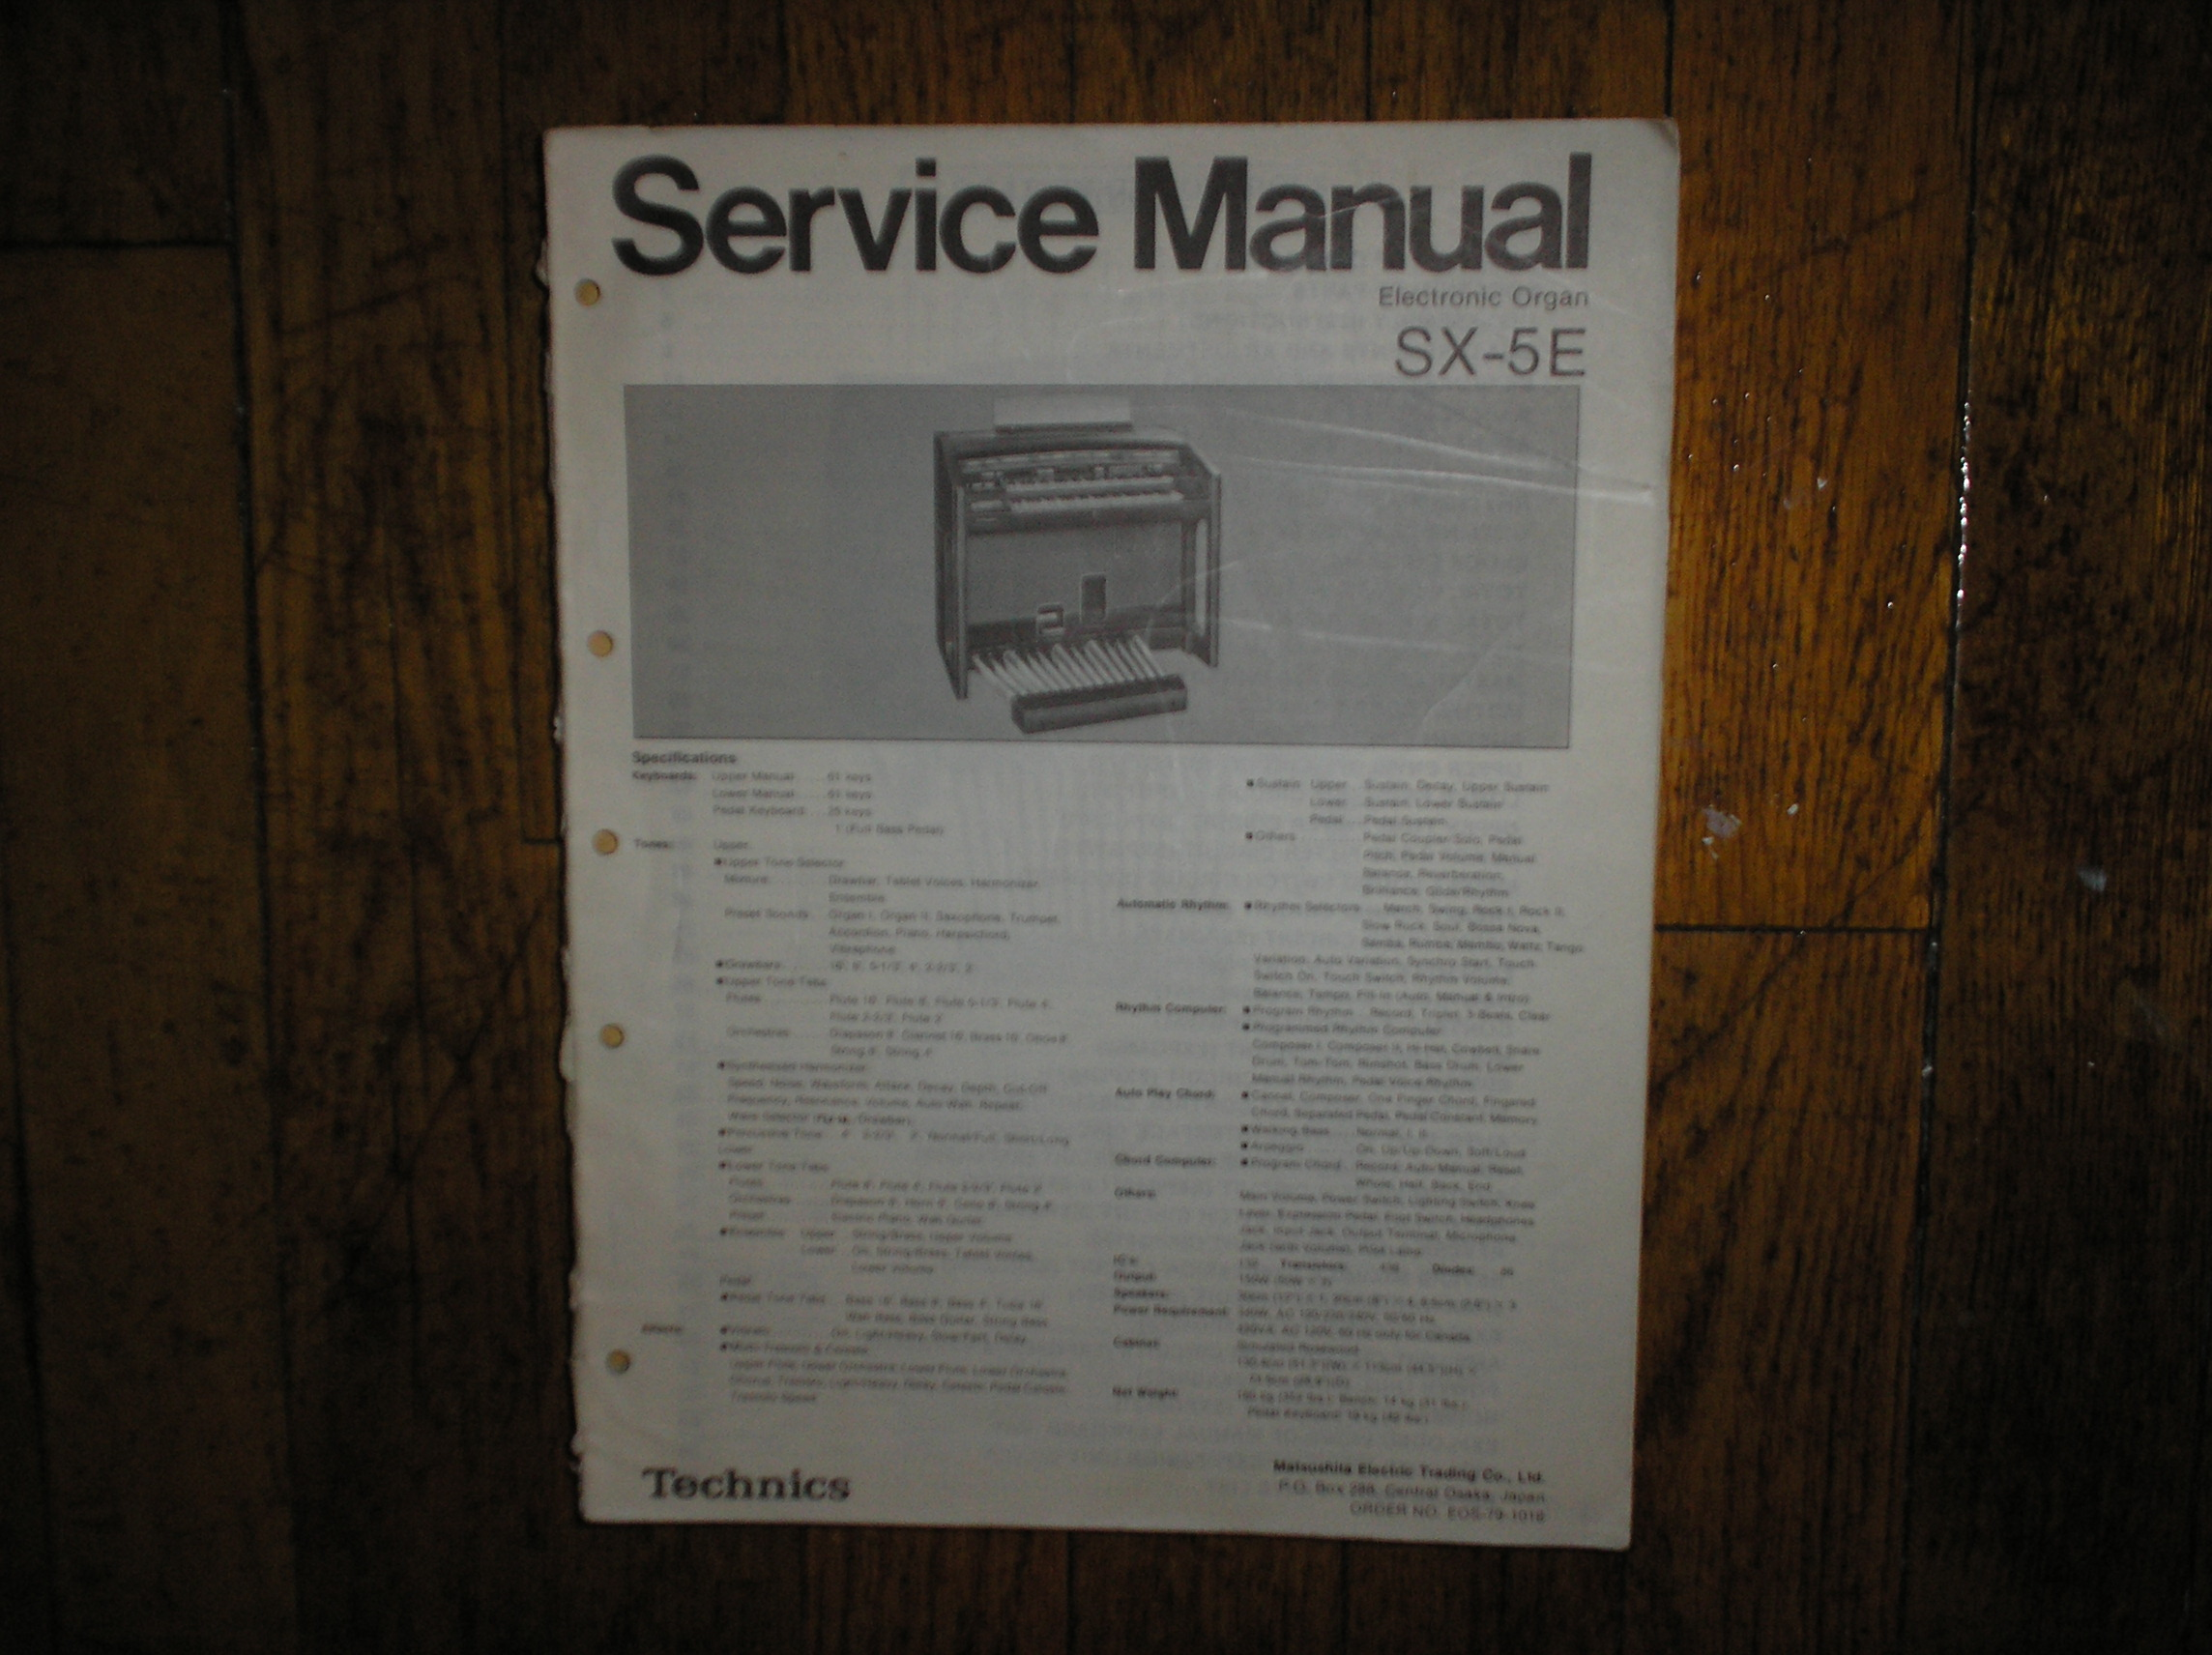 SX-5E Electronic Organ Service Manual